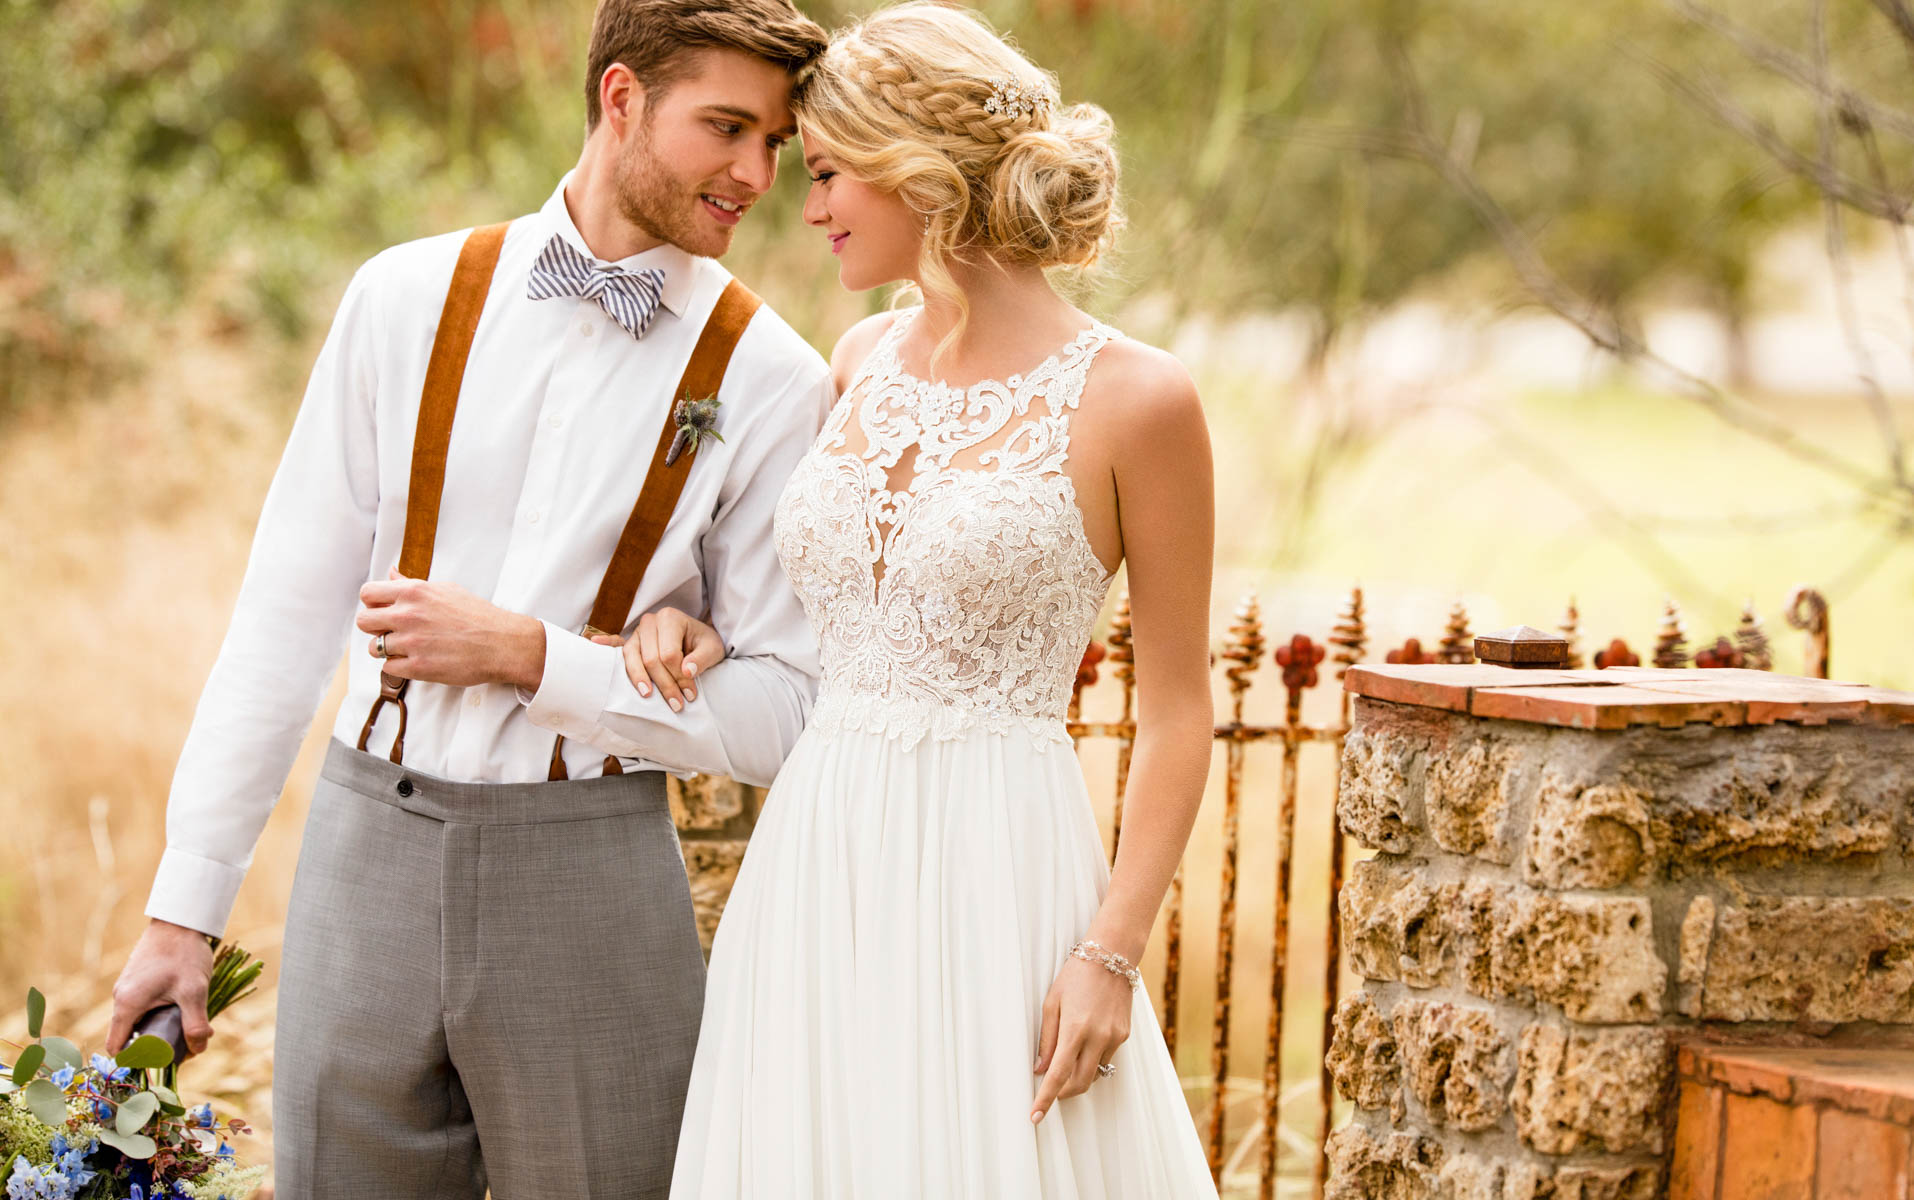 Boho Wedding Dresses For The Free Spirited Bride Find Your Dream Dress